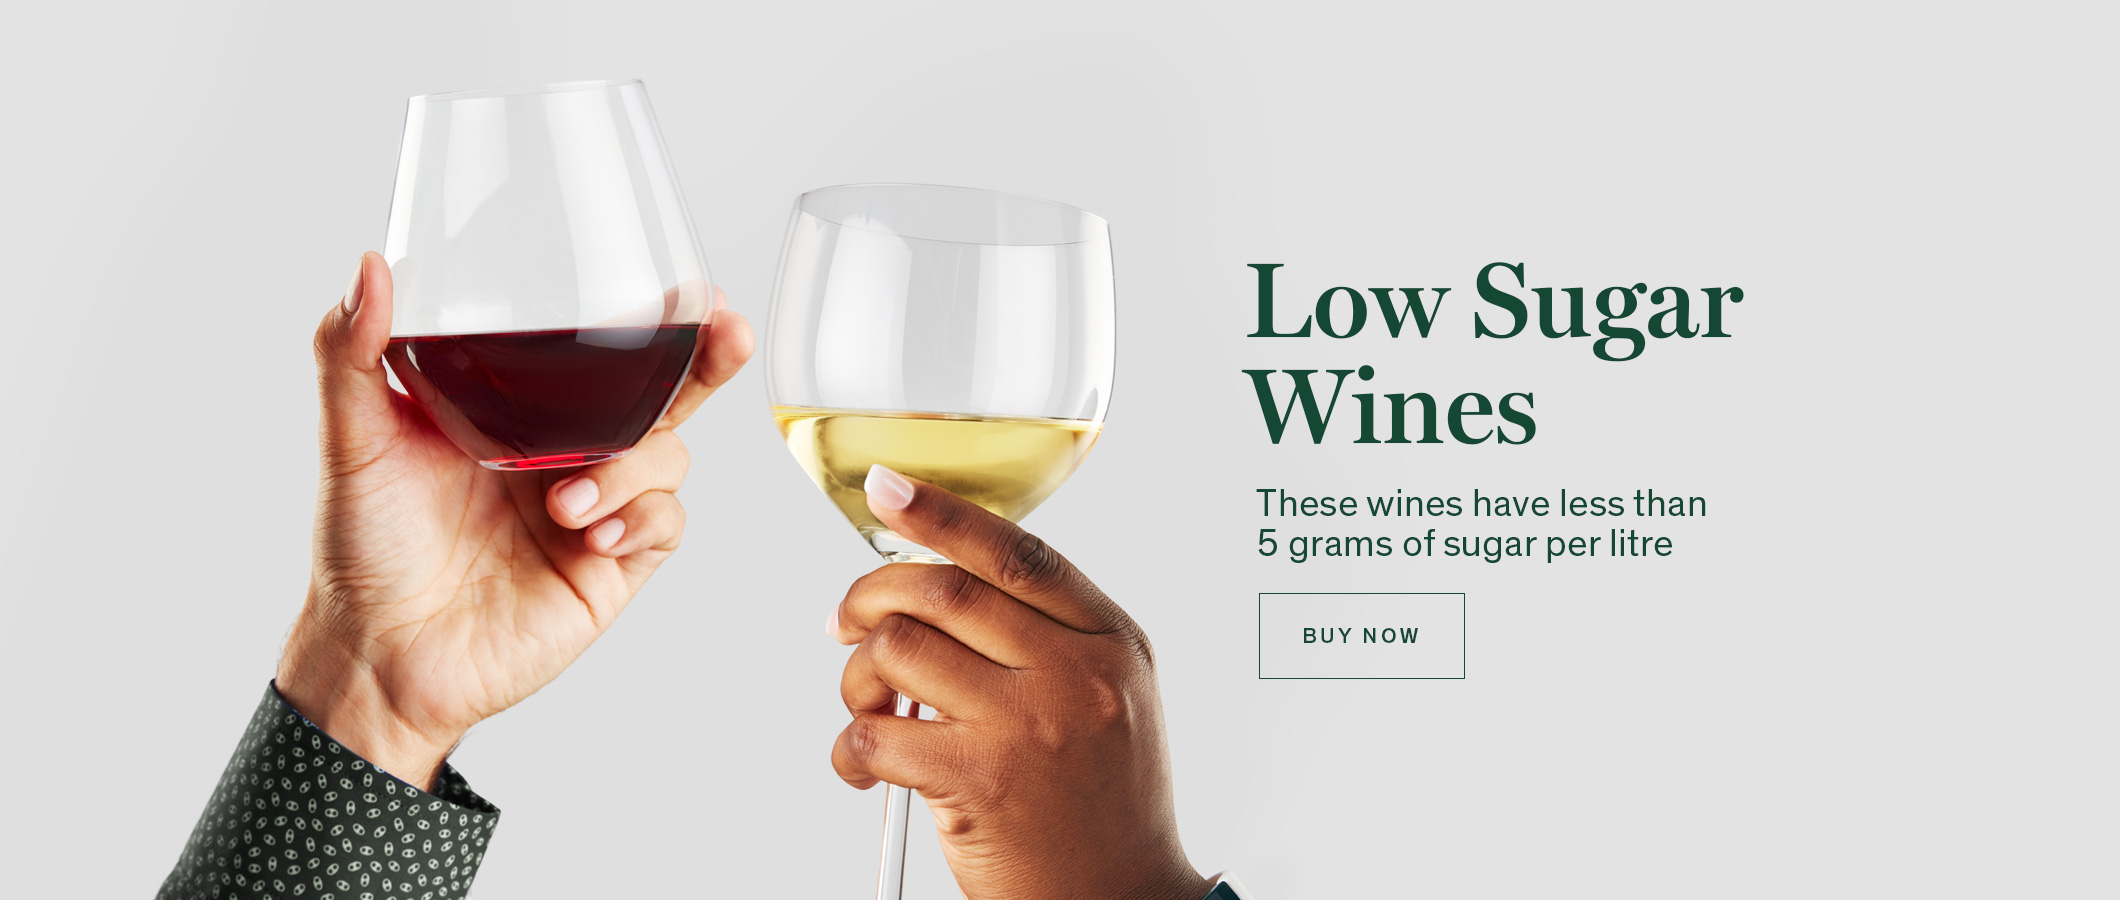 Low Sugar Wines. These wines have less than 5 grams of sugar per litre. Shop Now.